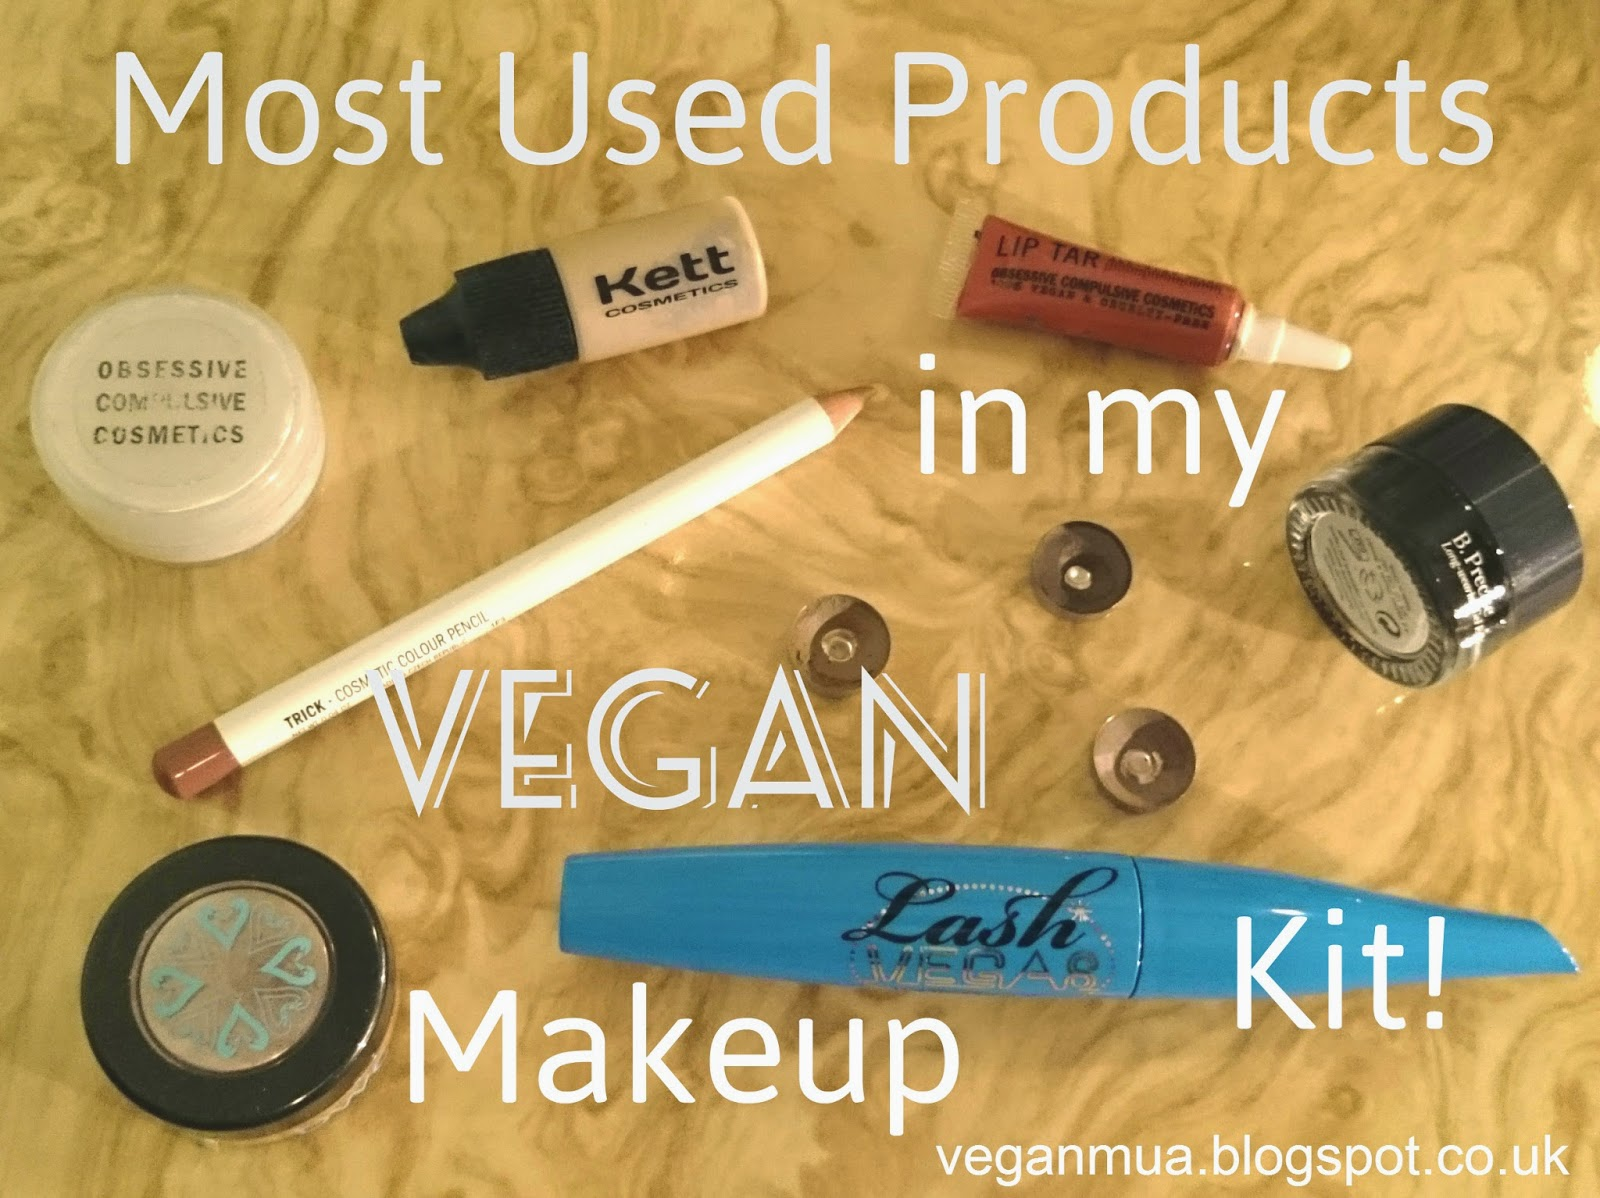 Most Used Products in my Vegan Makeup Kit